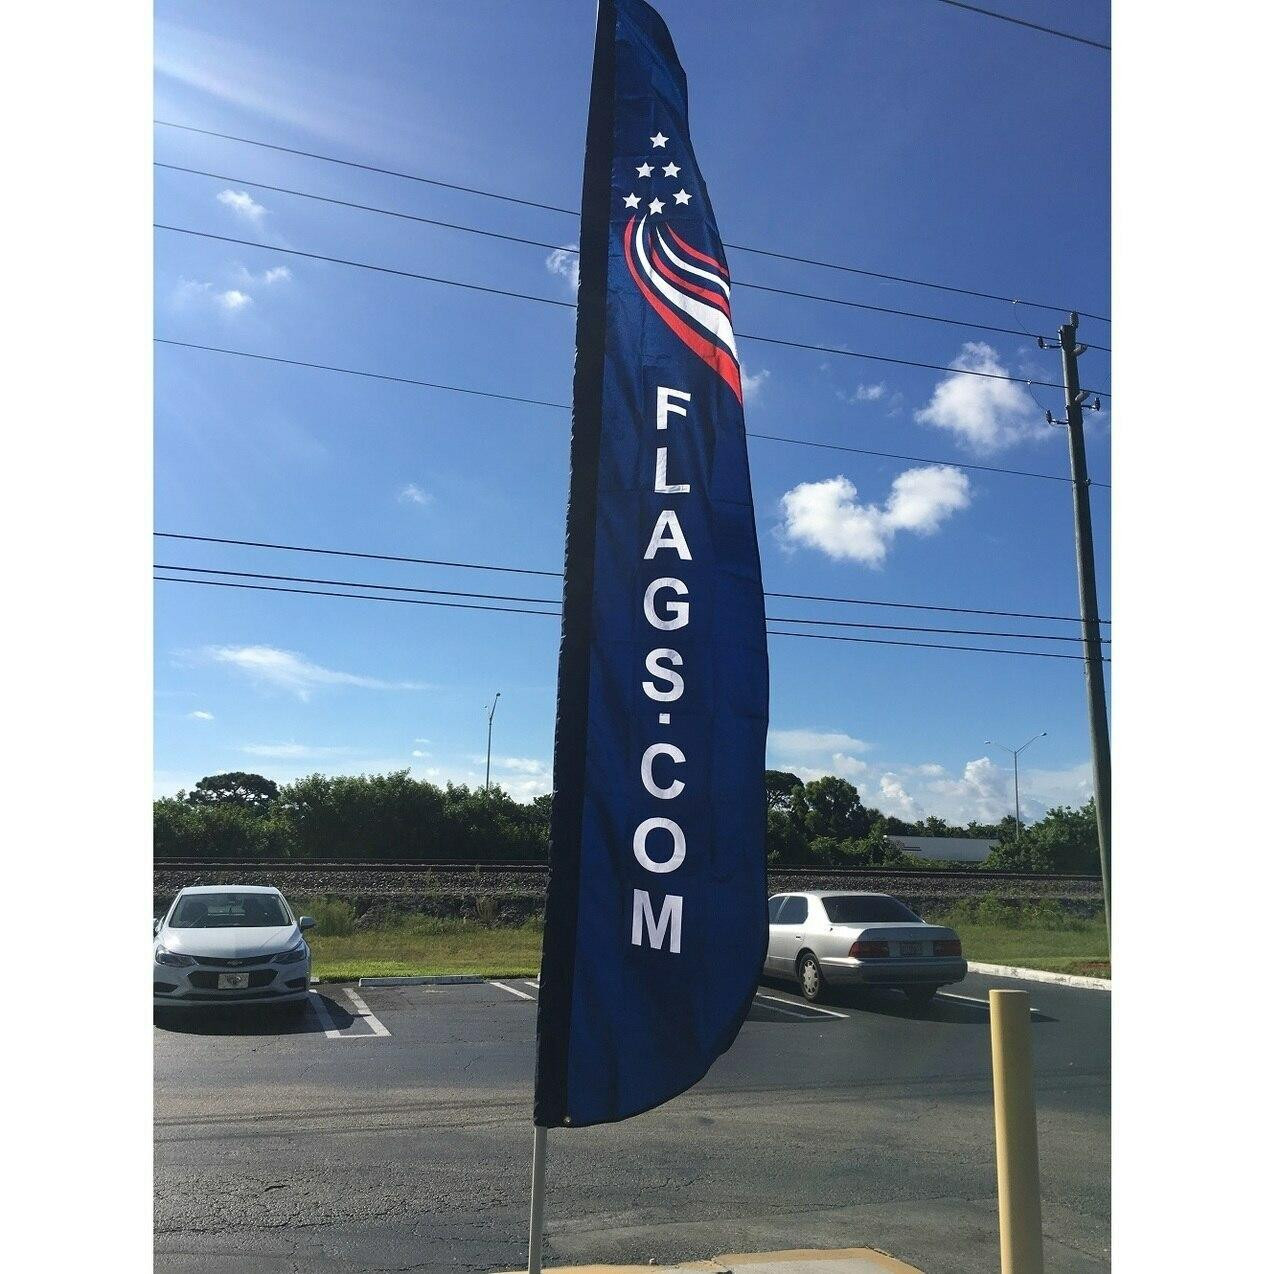 The telescoping fiberglass flagpole is outside again, fully extended featuring a Flags.com feather flag, great for catching customers' eyes.